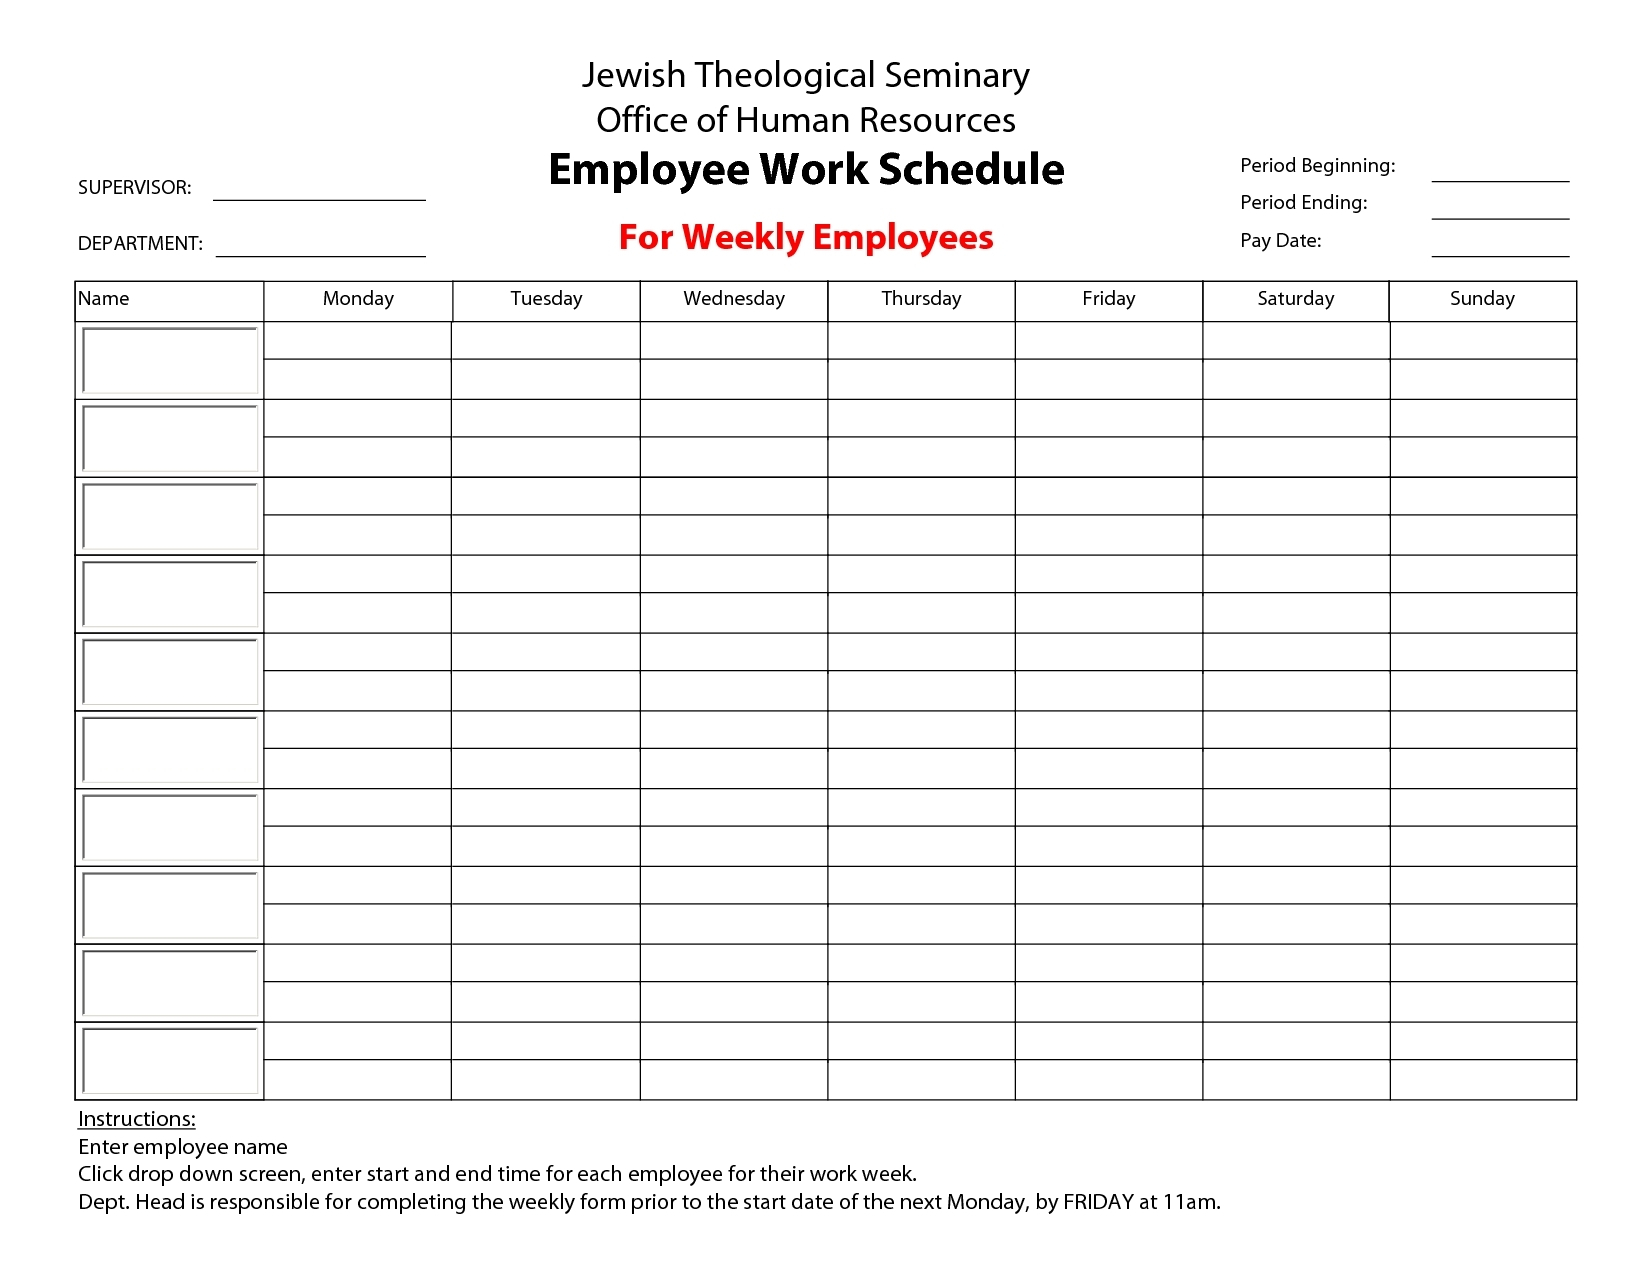 Take Printable Blank Bi-Weekly Employee Schedule ⋆ The Best